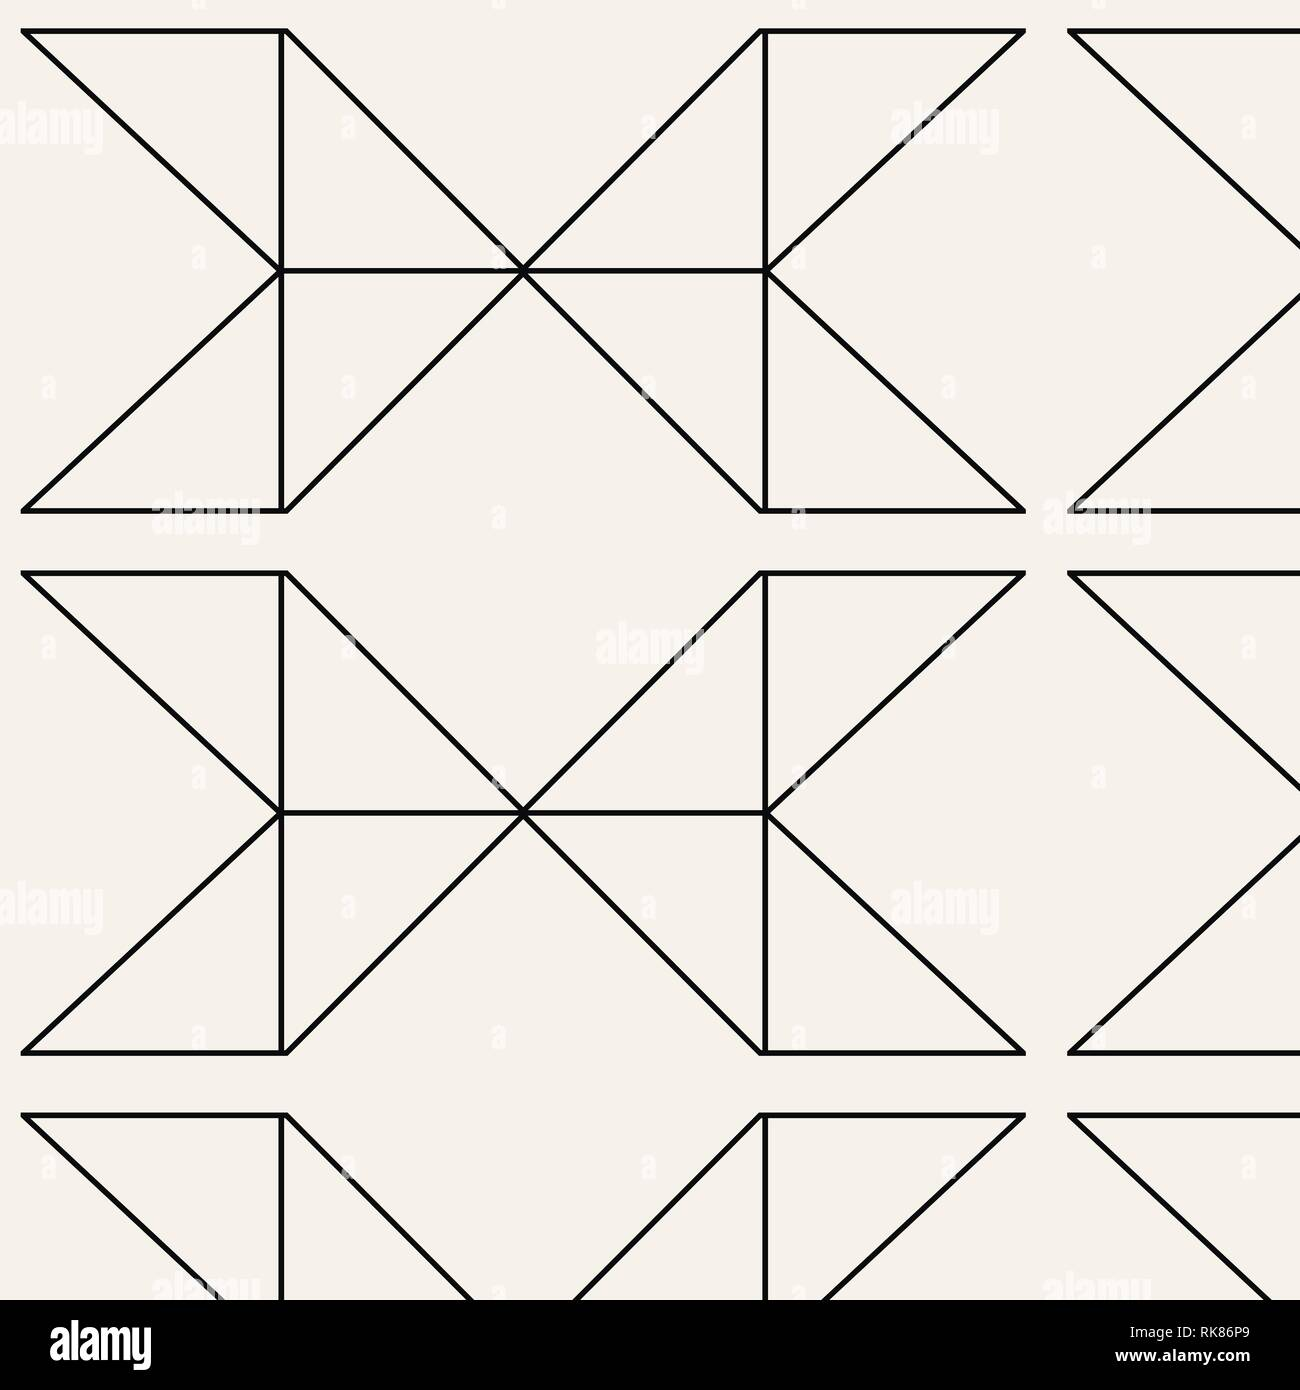 Vector seamless pattern. Modern stylish texture with monochrome trellis. Repeating geometric triangular grid. Simple graphic design. Trendy hipster sa - Stock Vector